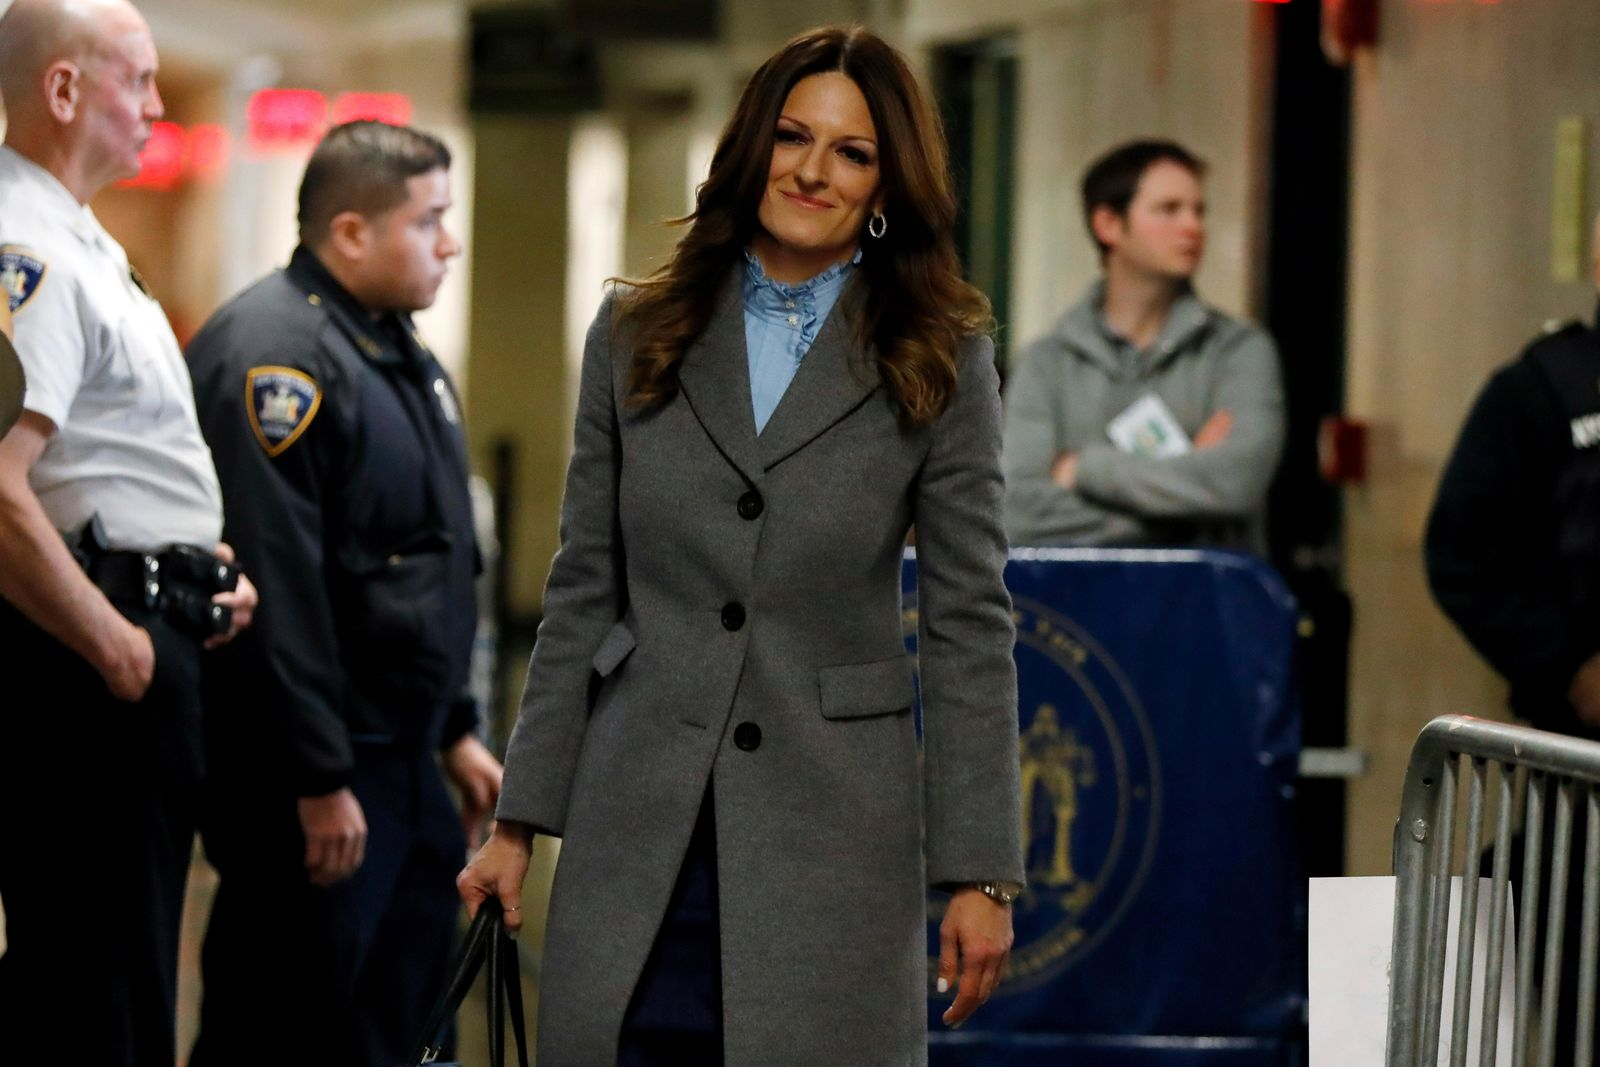 Donna Rotunno, attorney for Harvey Weinstein, arrives at court for his rape trial, in New York, Wednesday, Jan. 22, 2020. (AP Photo/Richard Drew)